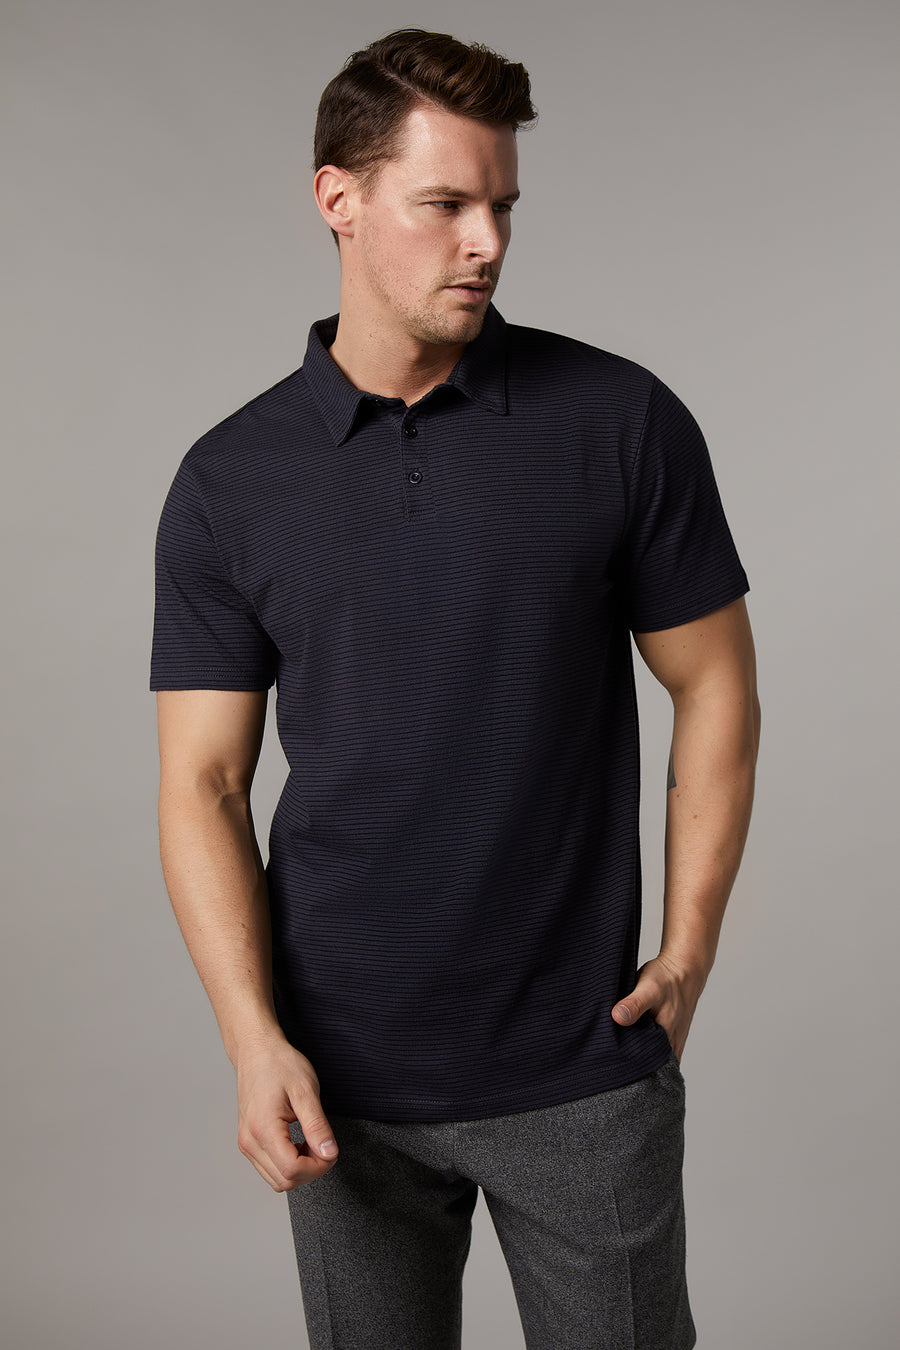 Kyle Cotton Black/Grey Polo